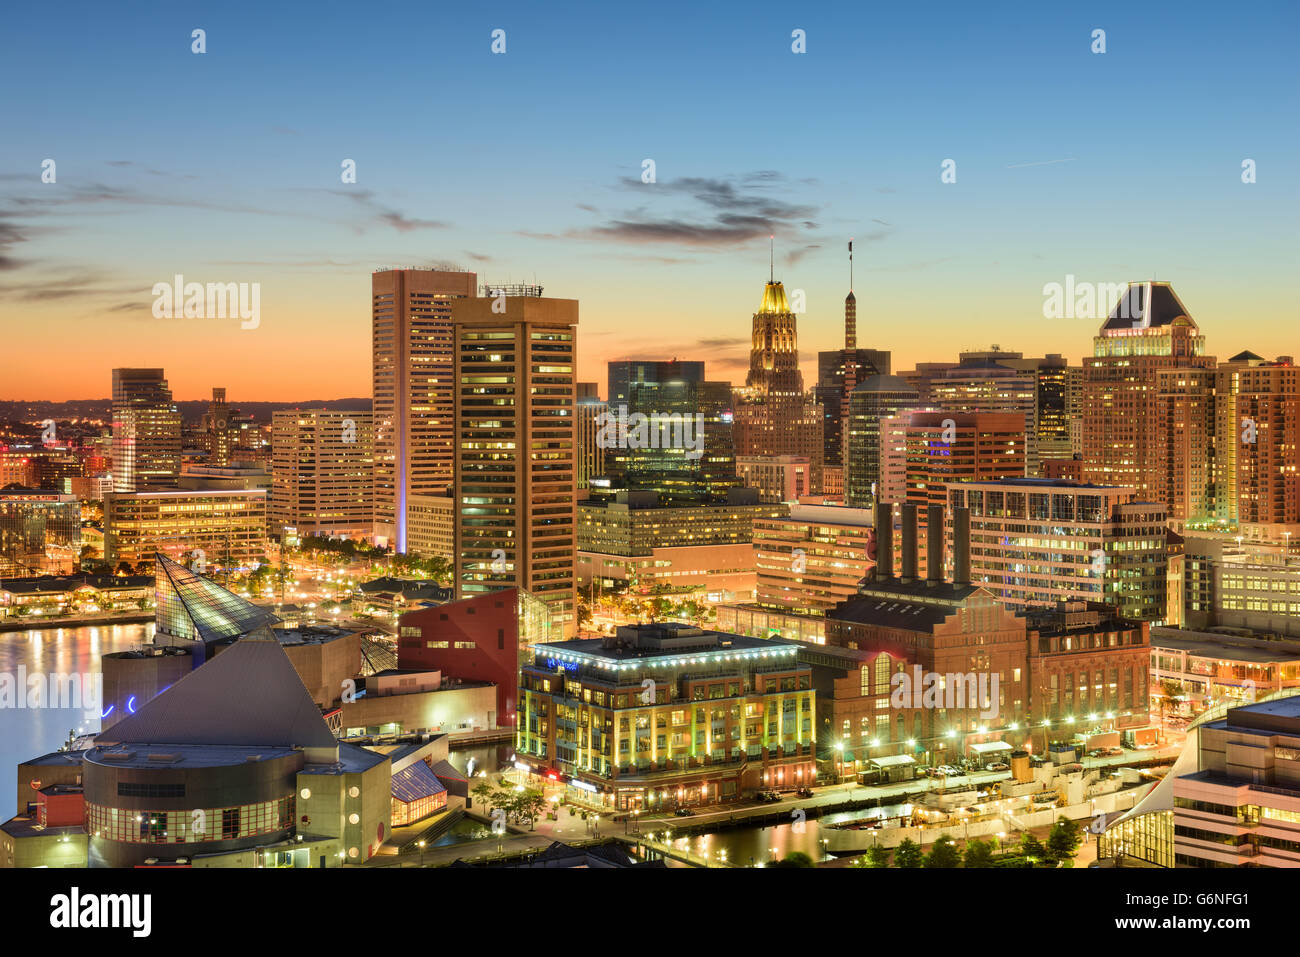 Baltimore, Maryland, USA downtown cityscape at dusk. - Stock Image